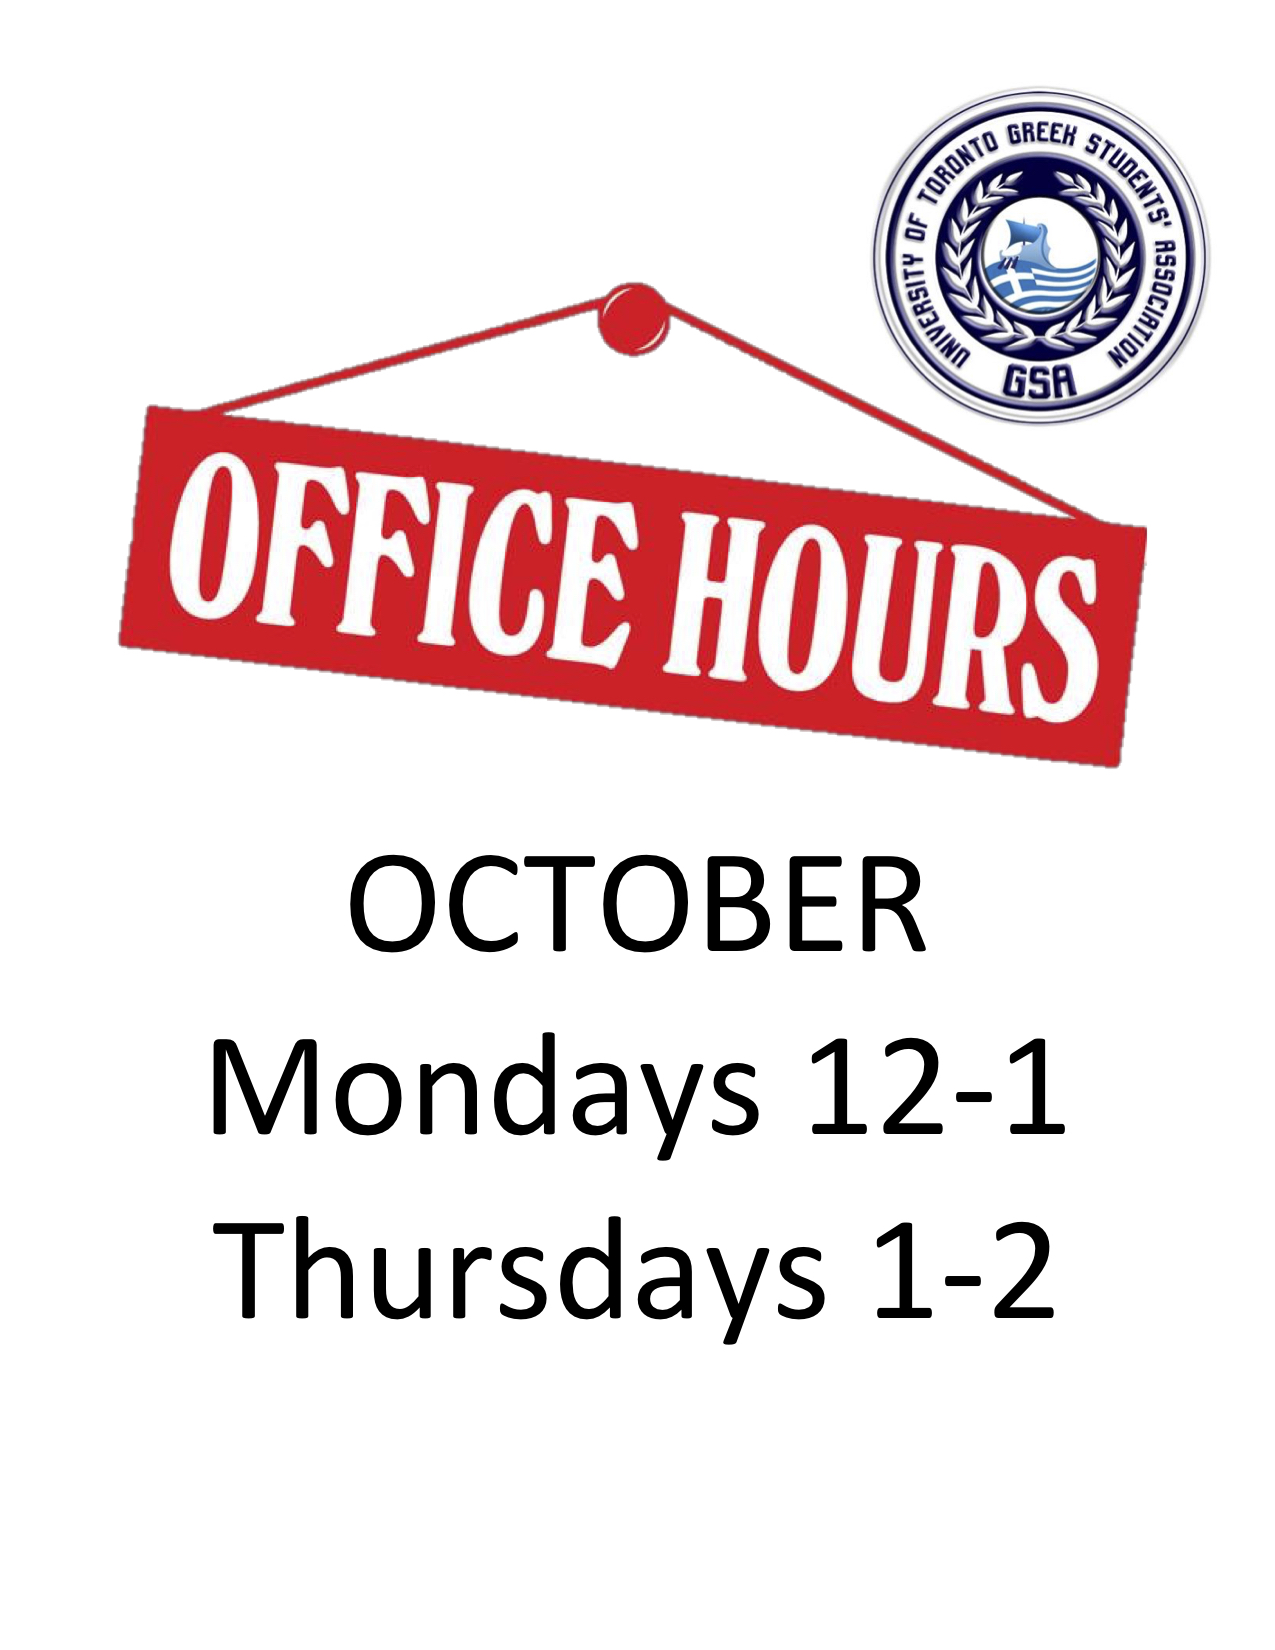 October office hours